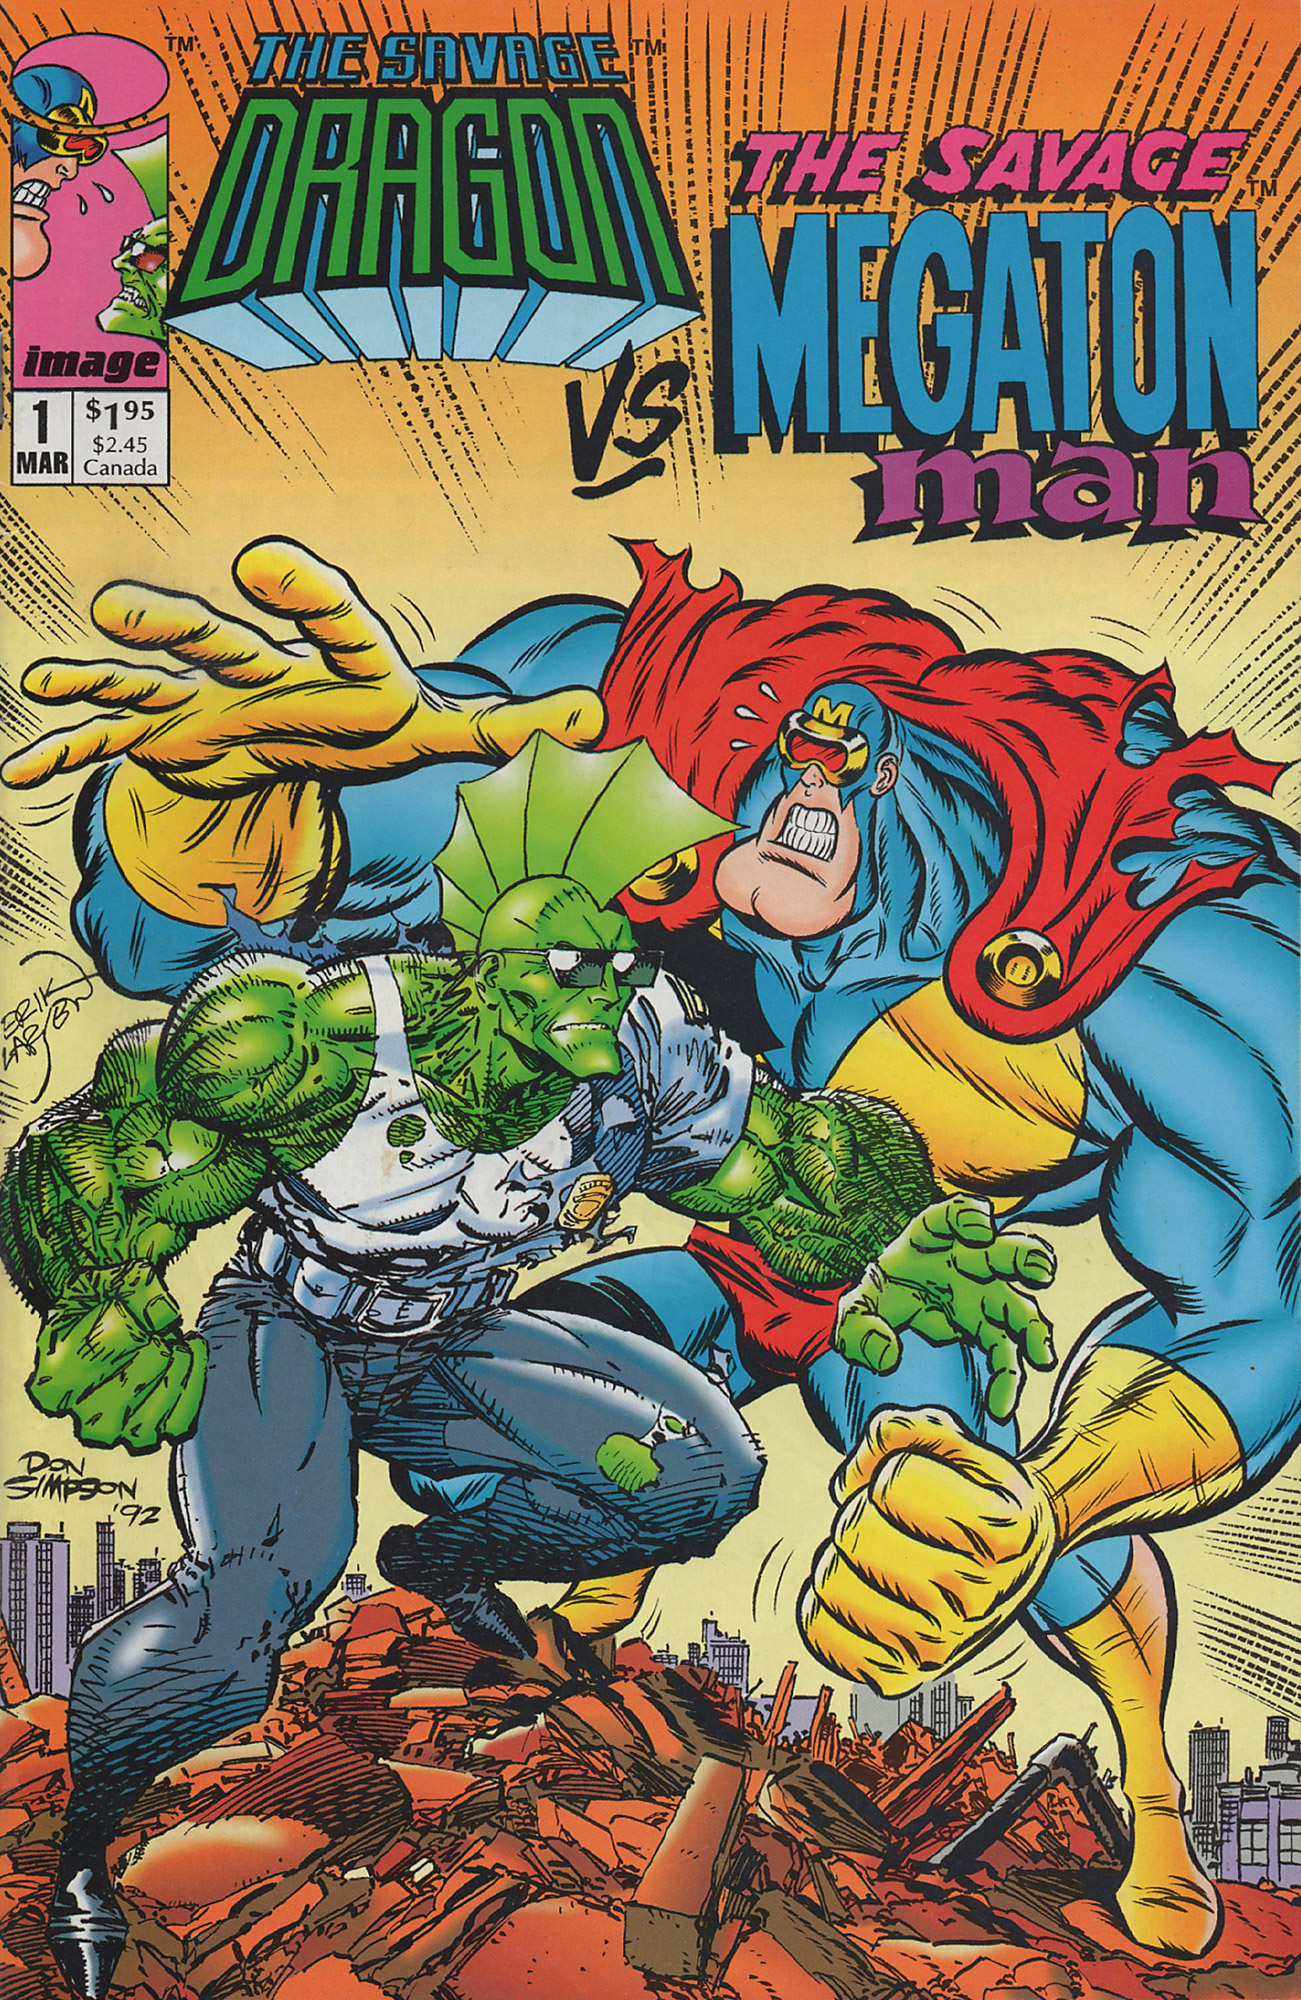 Cover Savage Dragon vs. Savage Megaton Man #1